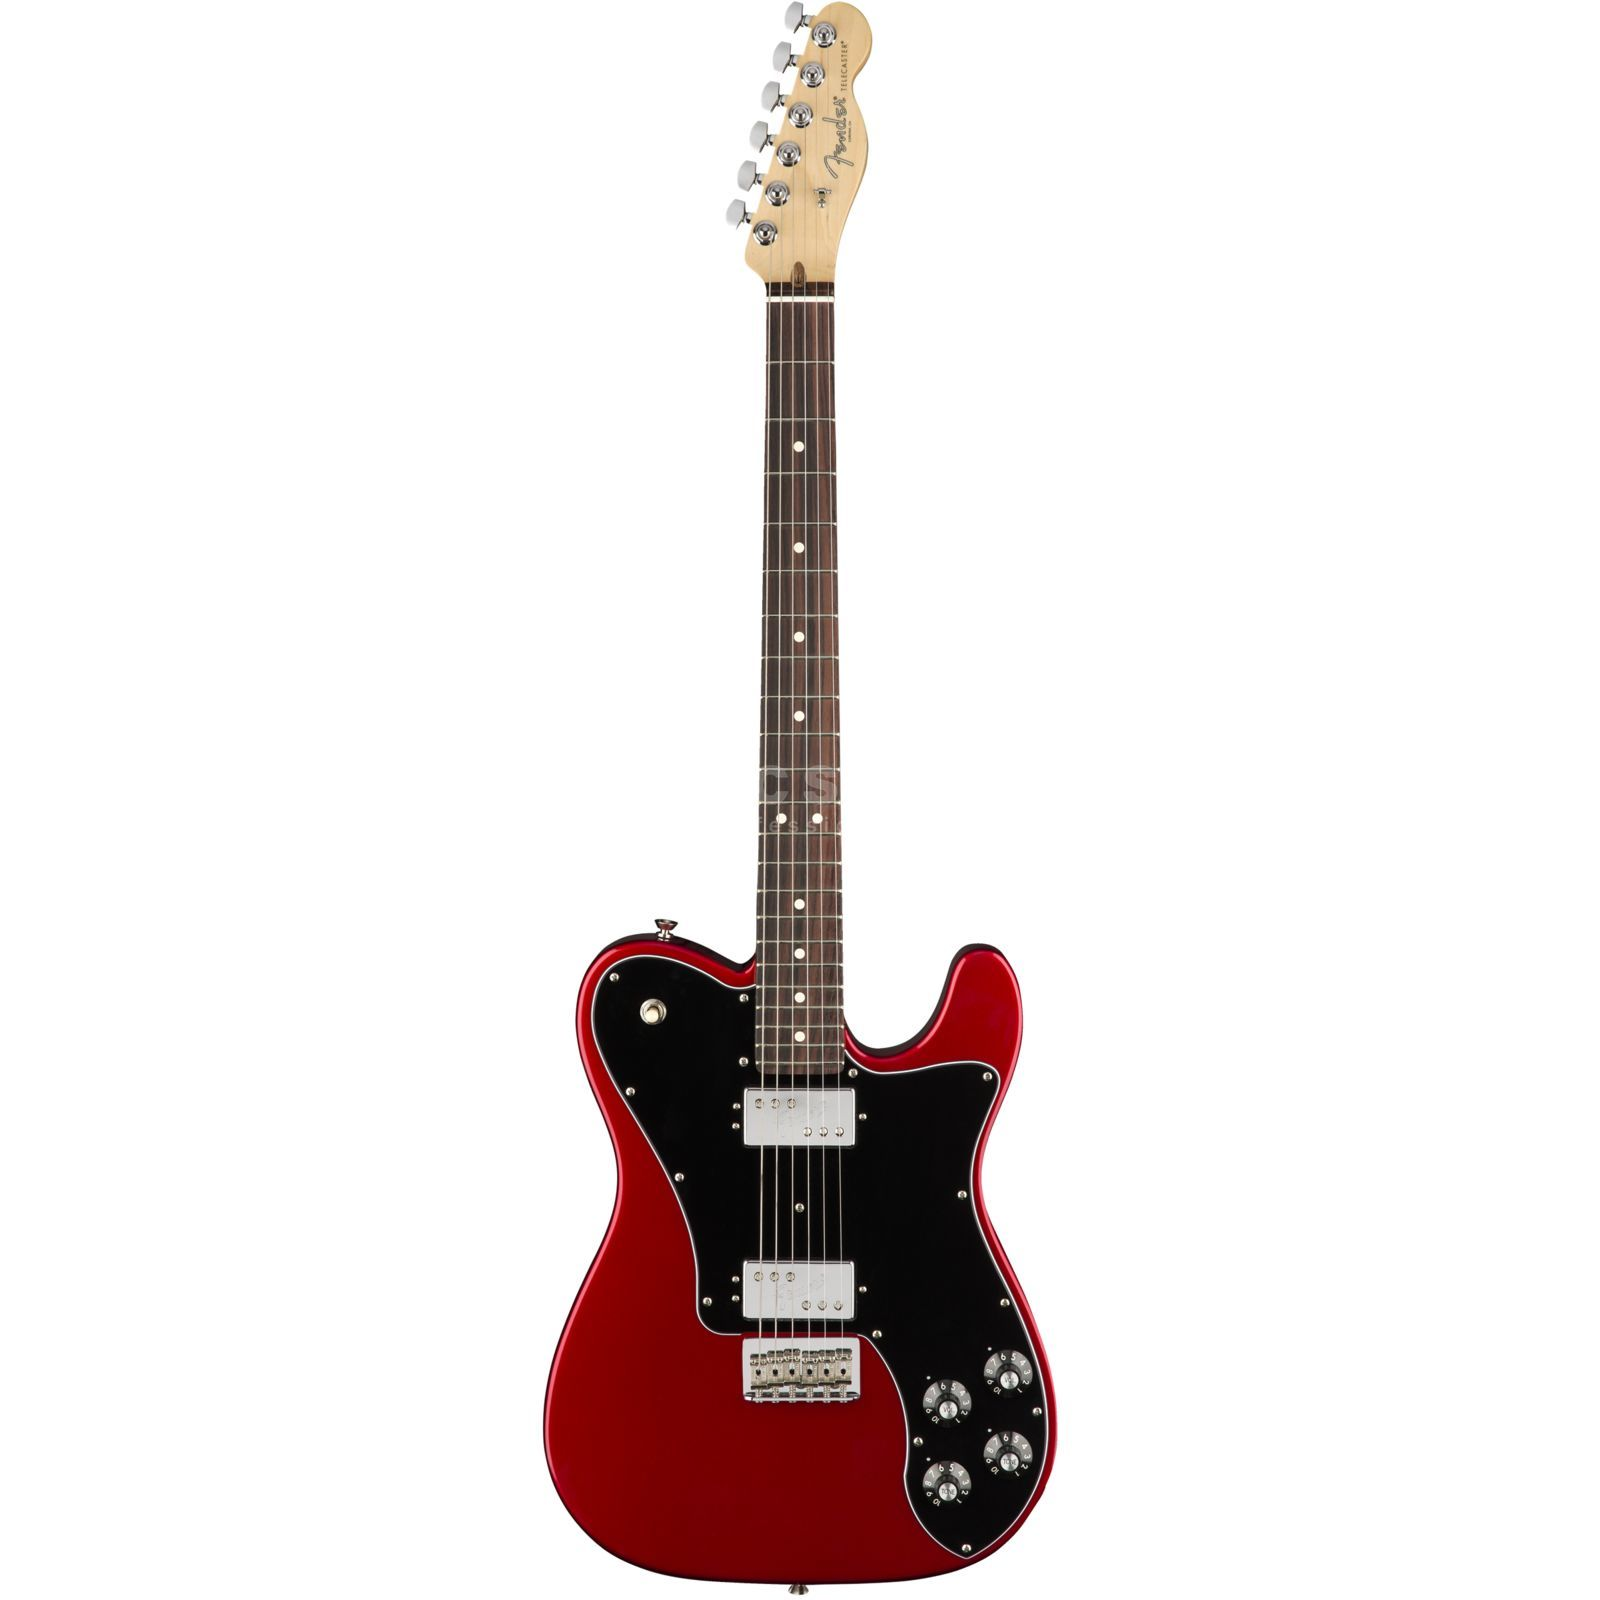 Fender American Professional Telecaster Deluxe ShawBucker RW Candy Apple Red Product Image